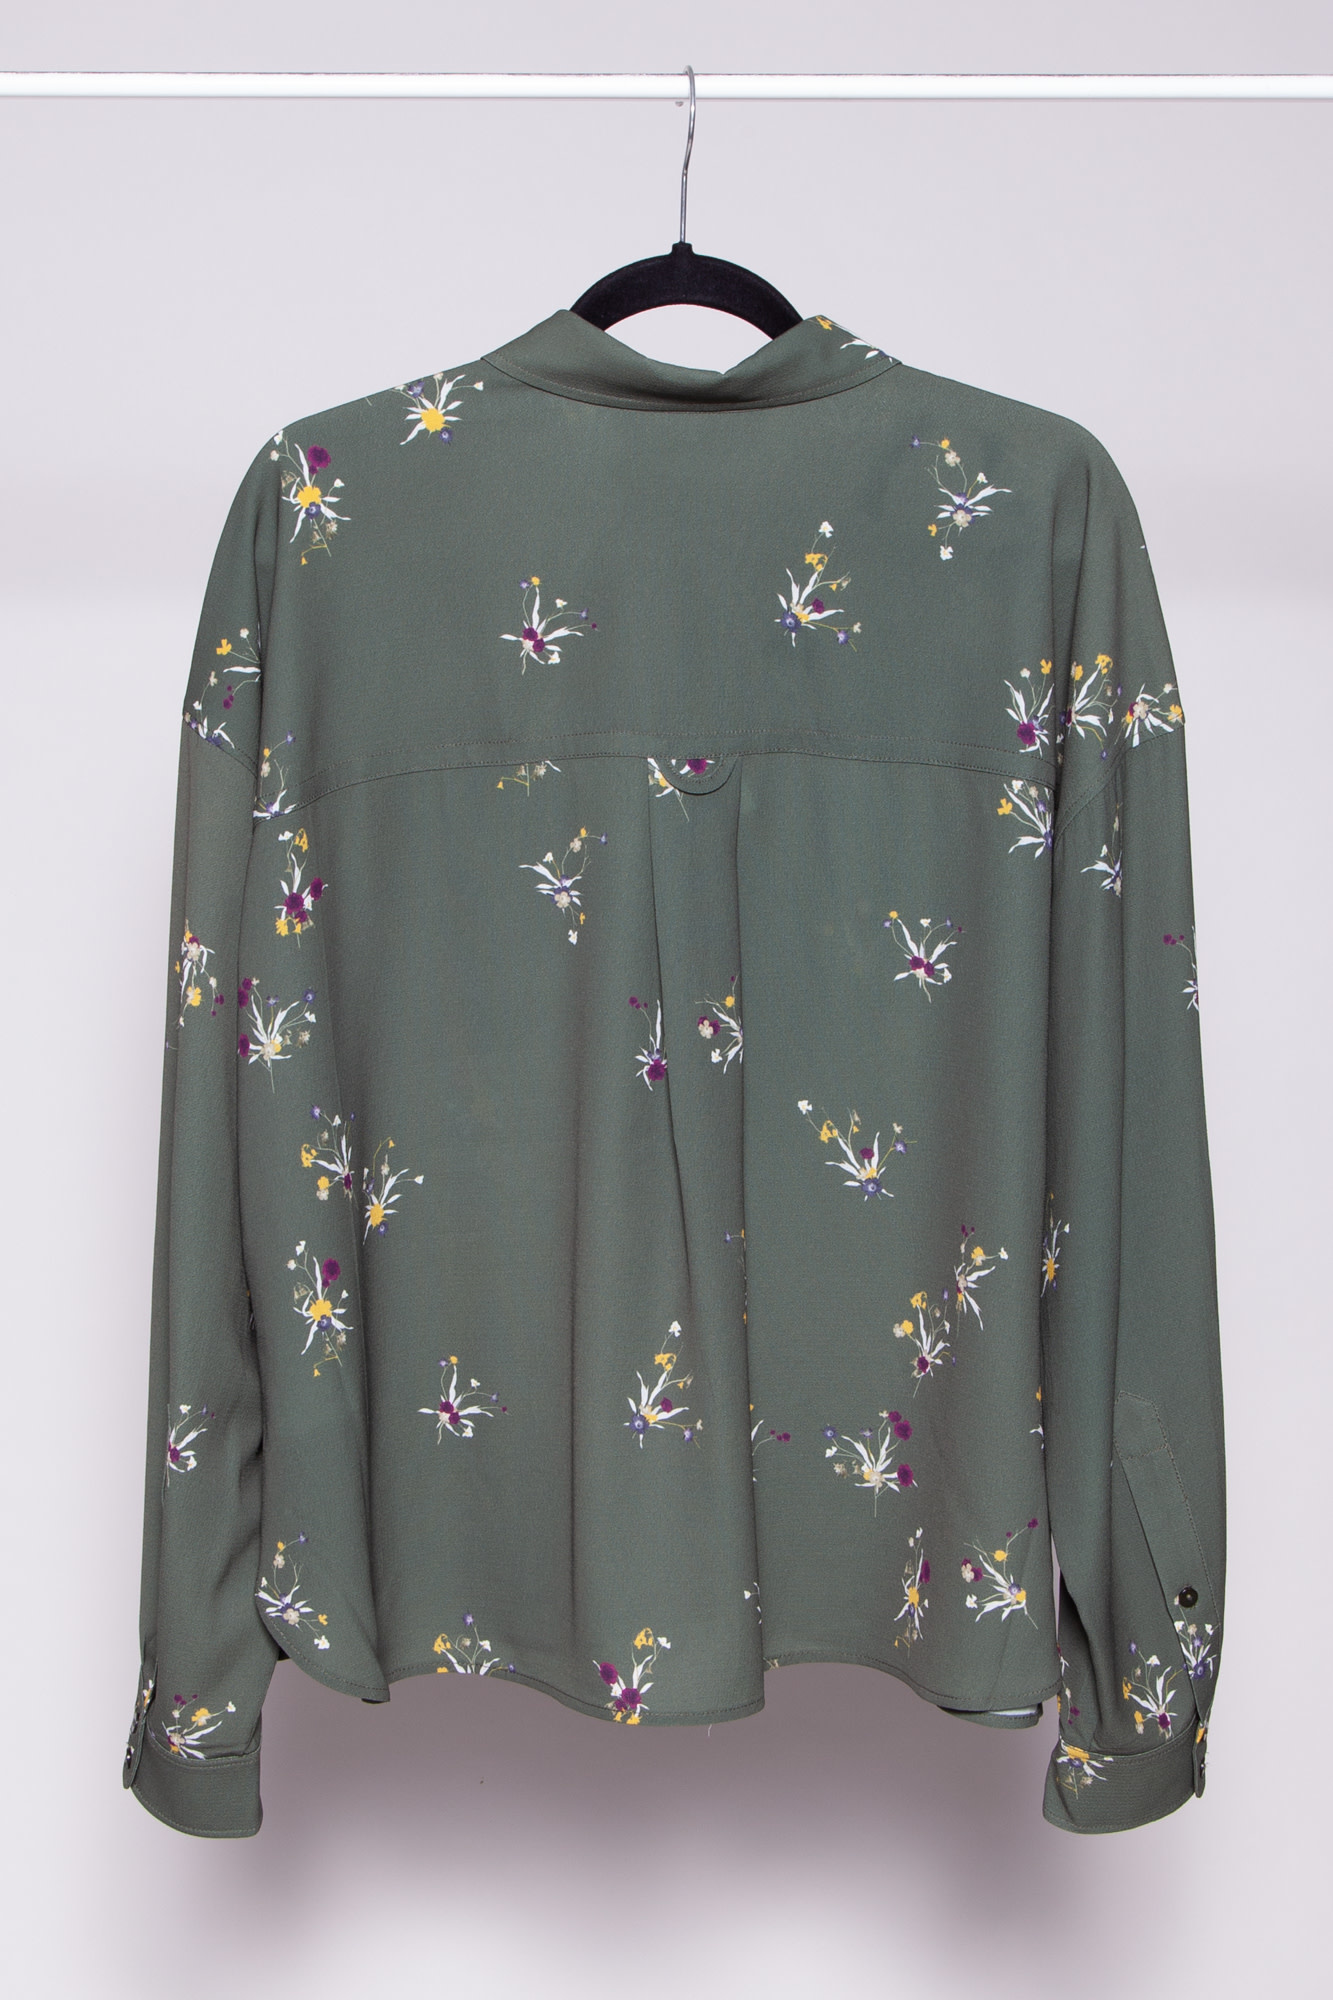 FWSS GREEN FLORAL-PRINT RECYCLED POLYESTER SHIRT - NEW